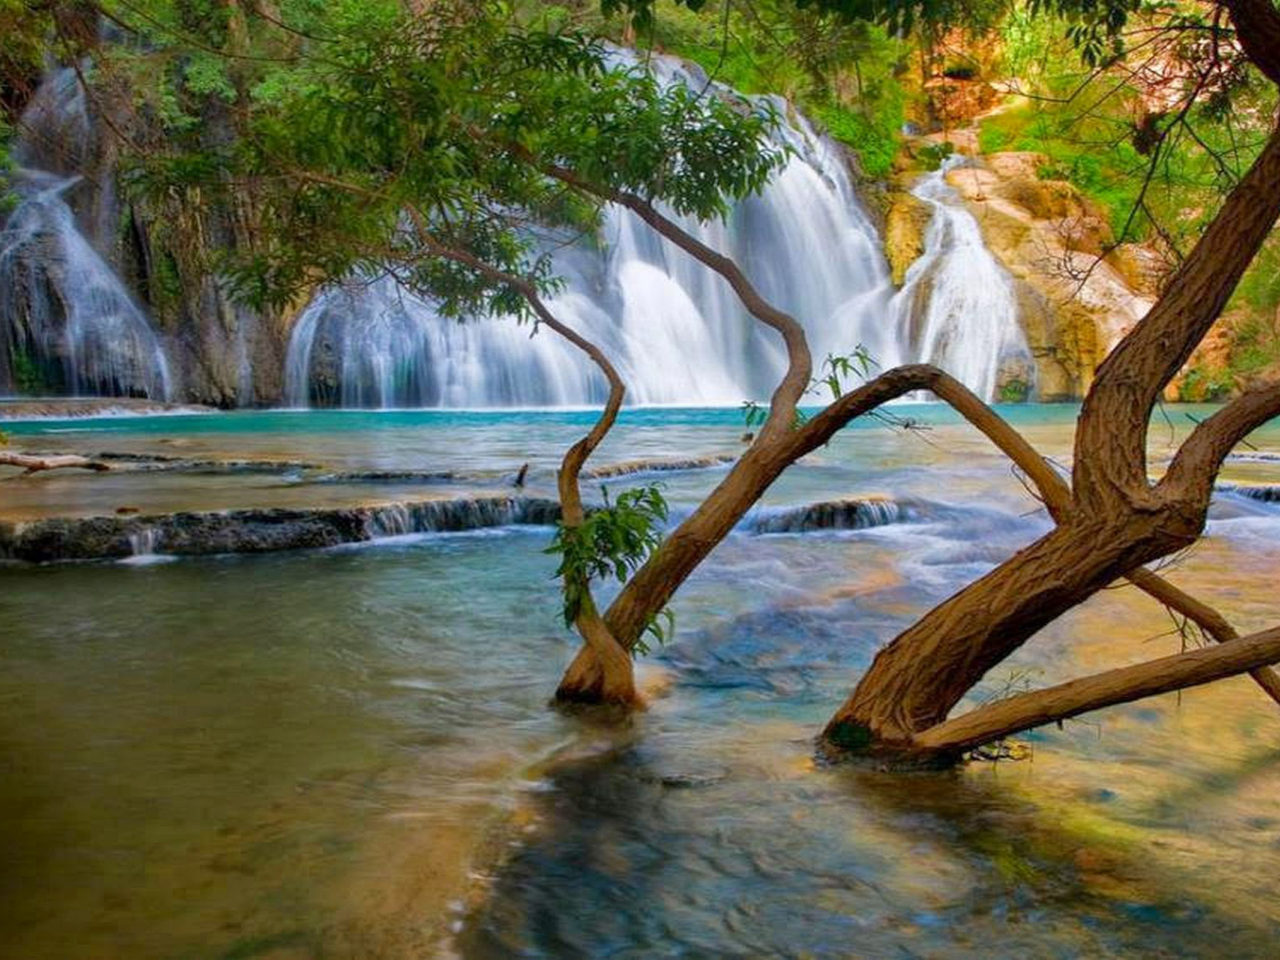 Download Dota 2 Wallpaper Hd Havasu Falls Wallpapers 5784 Wallpapers13 Com